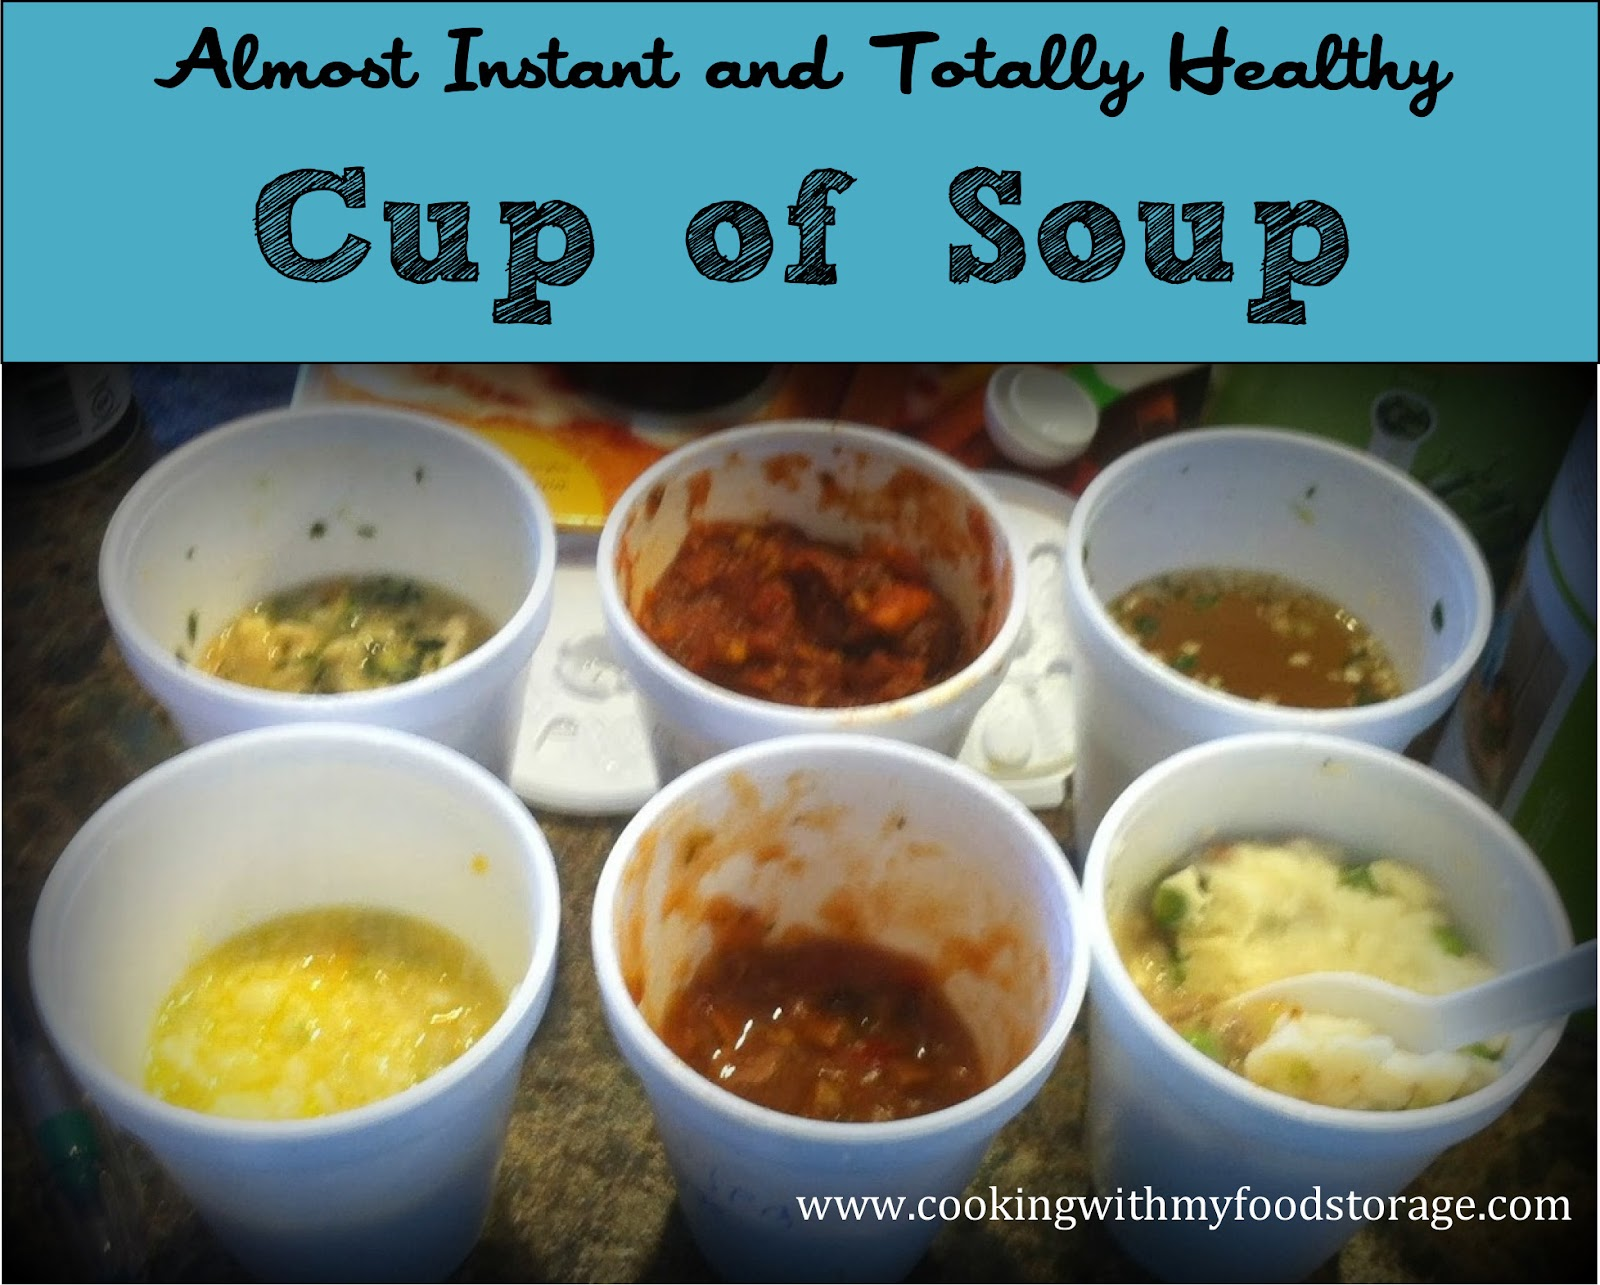 http://www.cookingwithmyfoodstorage.com/2014/01/almost-instant-and-totally-healthy-cup.html